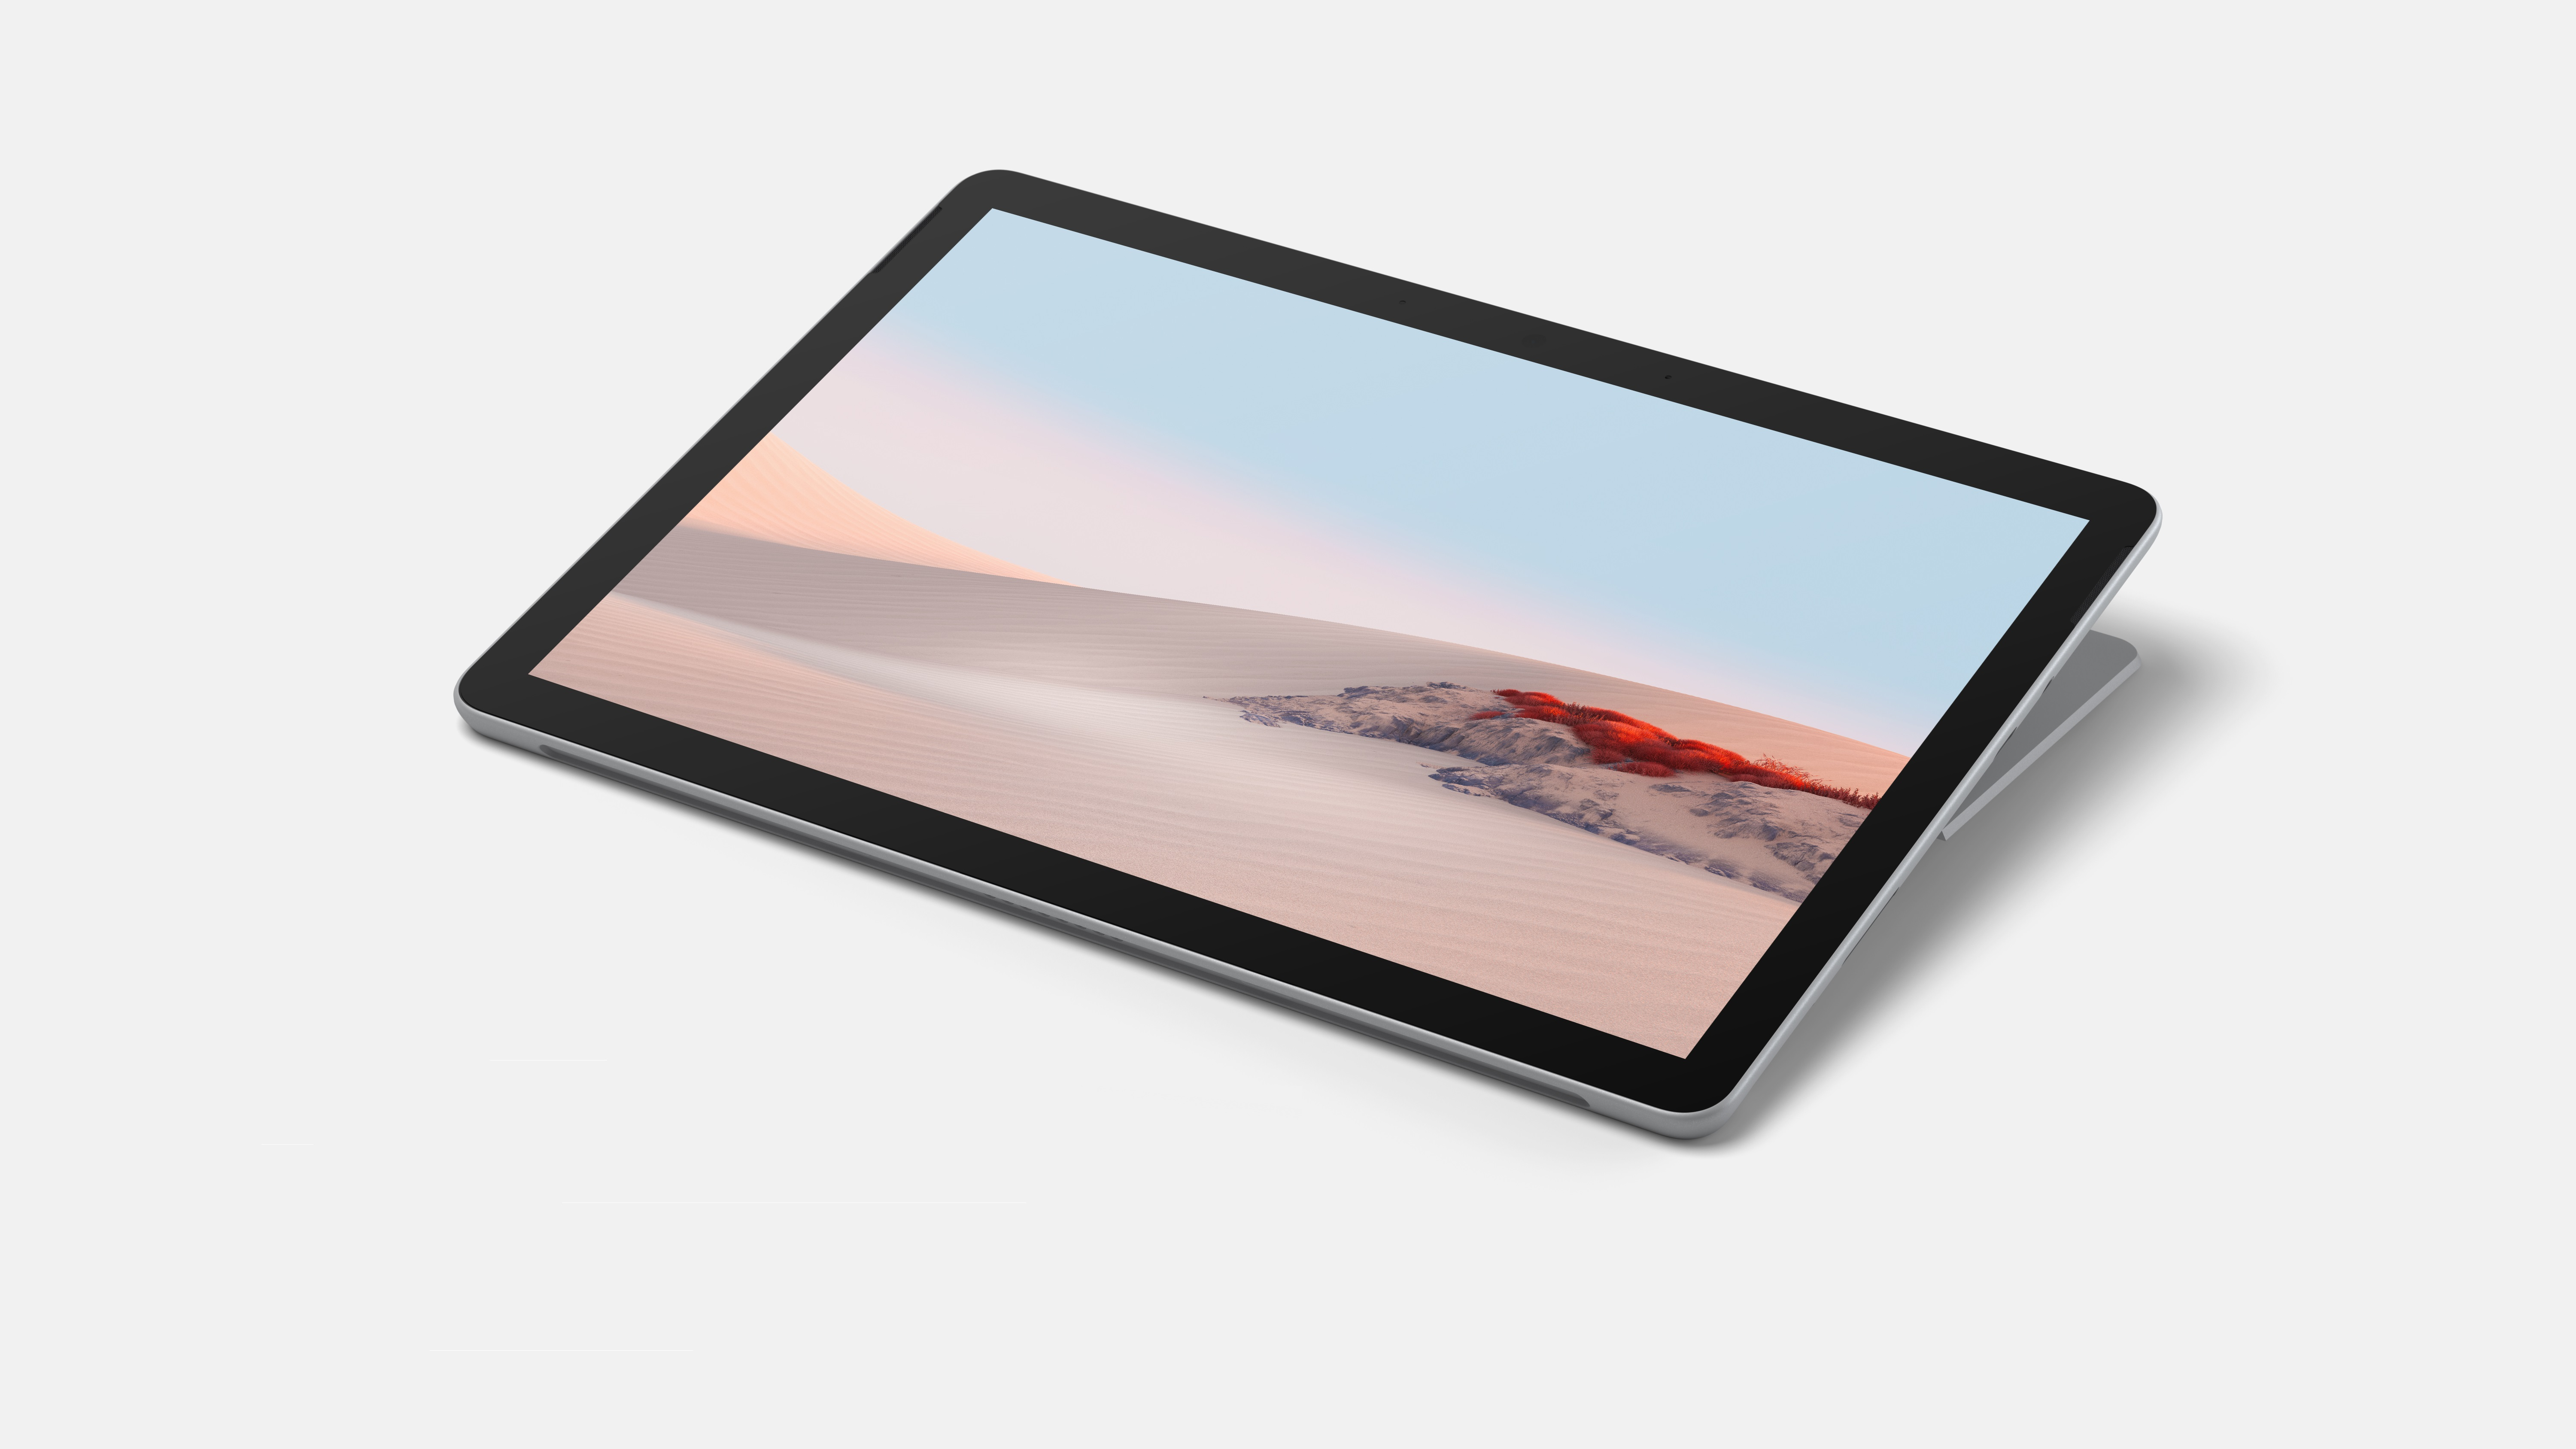 Microsoft Surface Go 2 - Intel Core M3 / 8GB / 128GB / LTE-A; Commercial